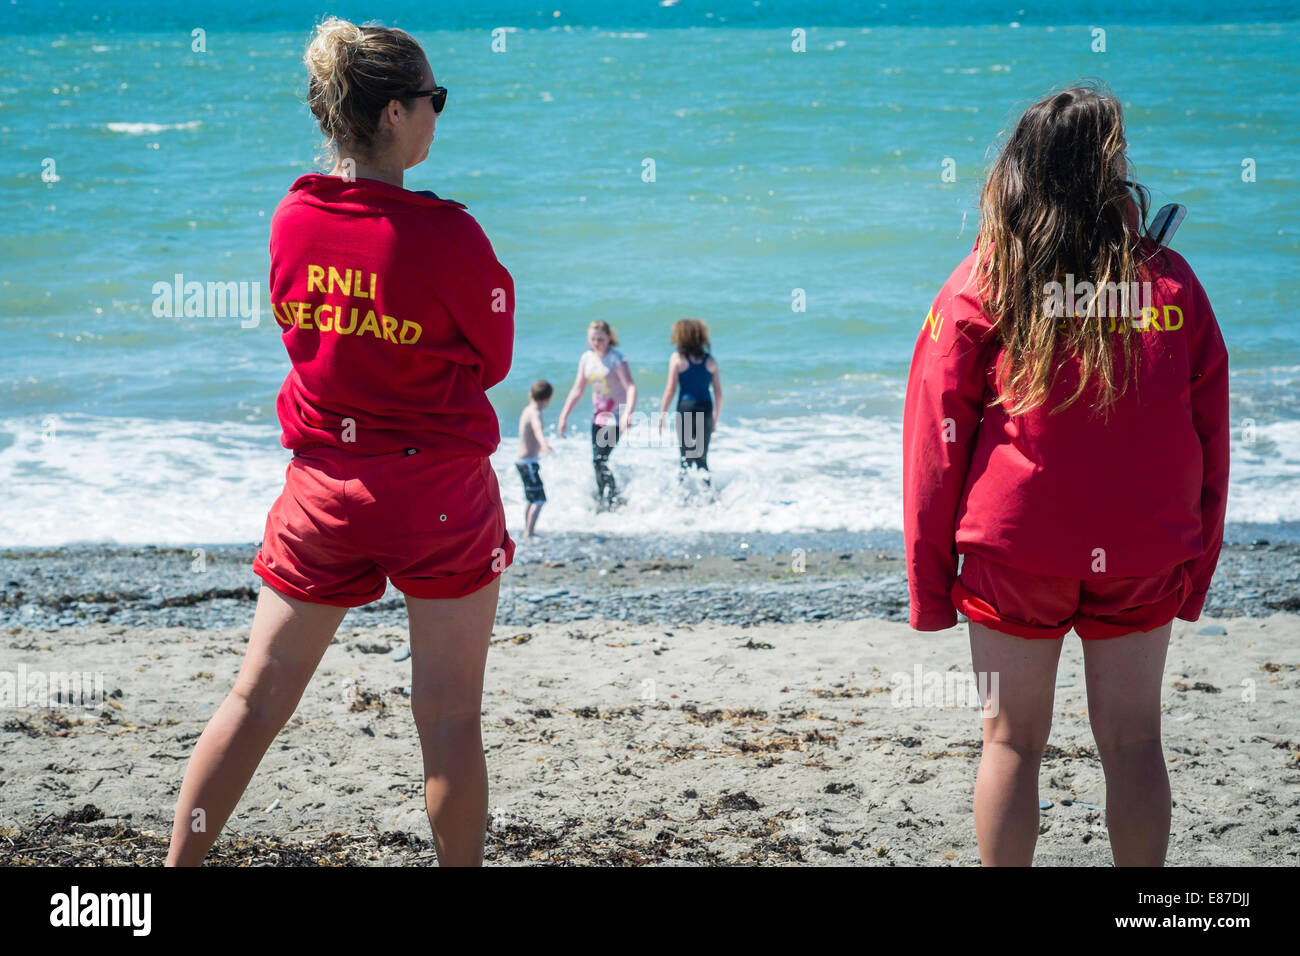 ef2c33be100 Two young women RNLI lifeguards on Aberystwyth beach watching children  playing in the sea